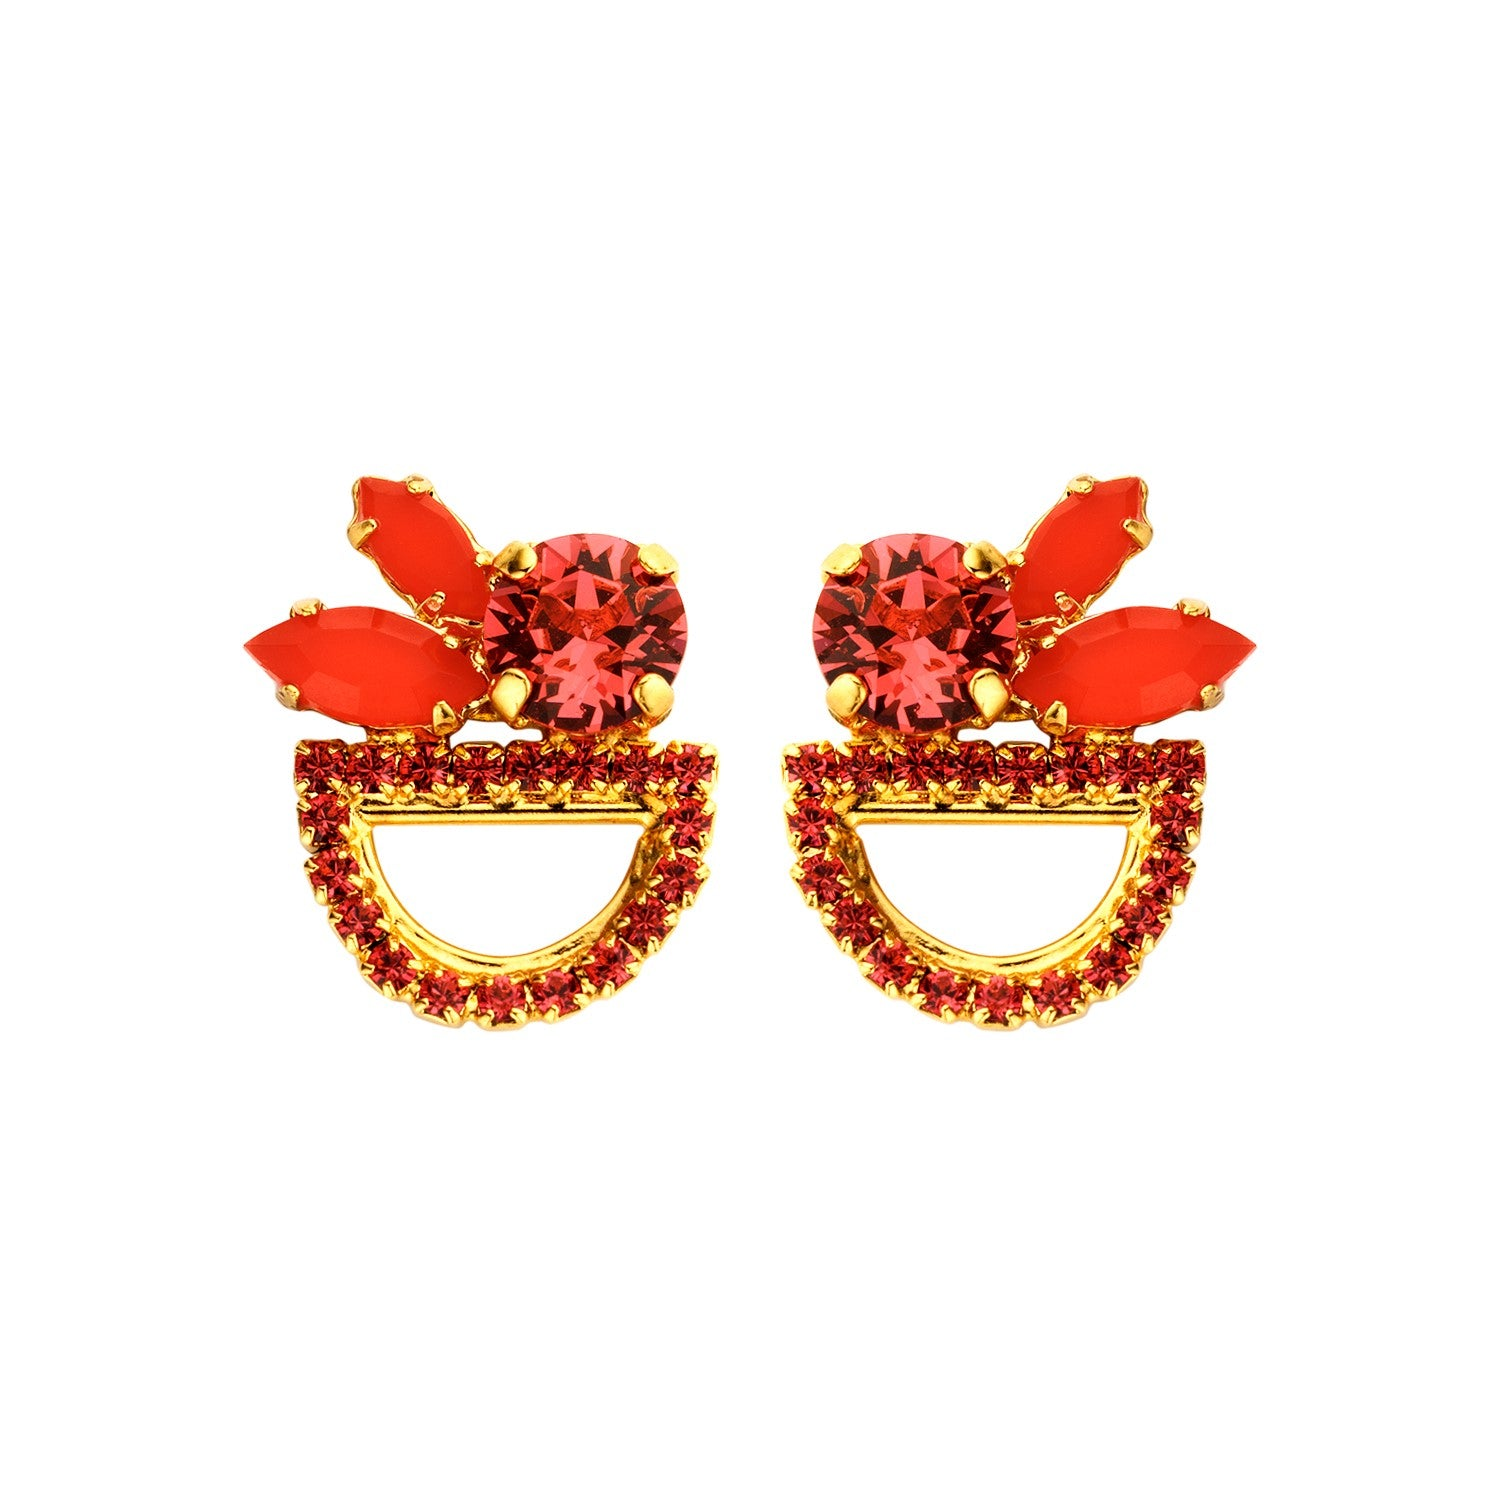 Moon shortie red earrings - Souvenirs de Pomme